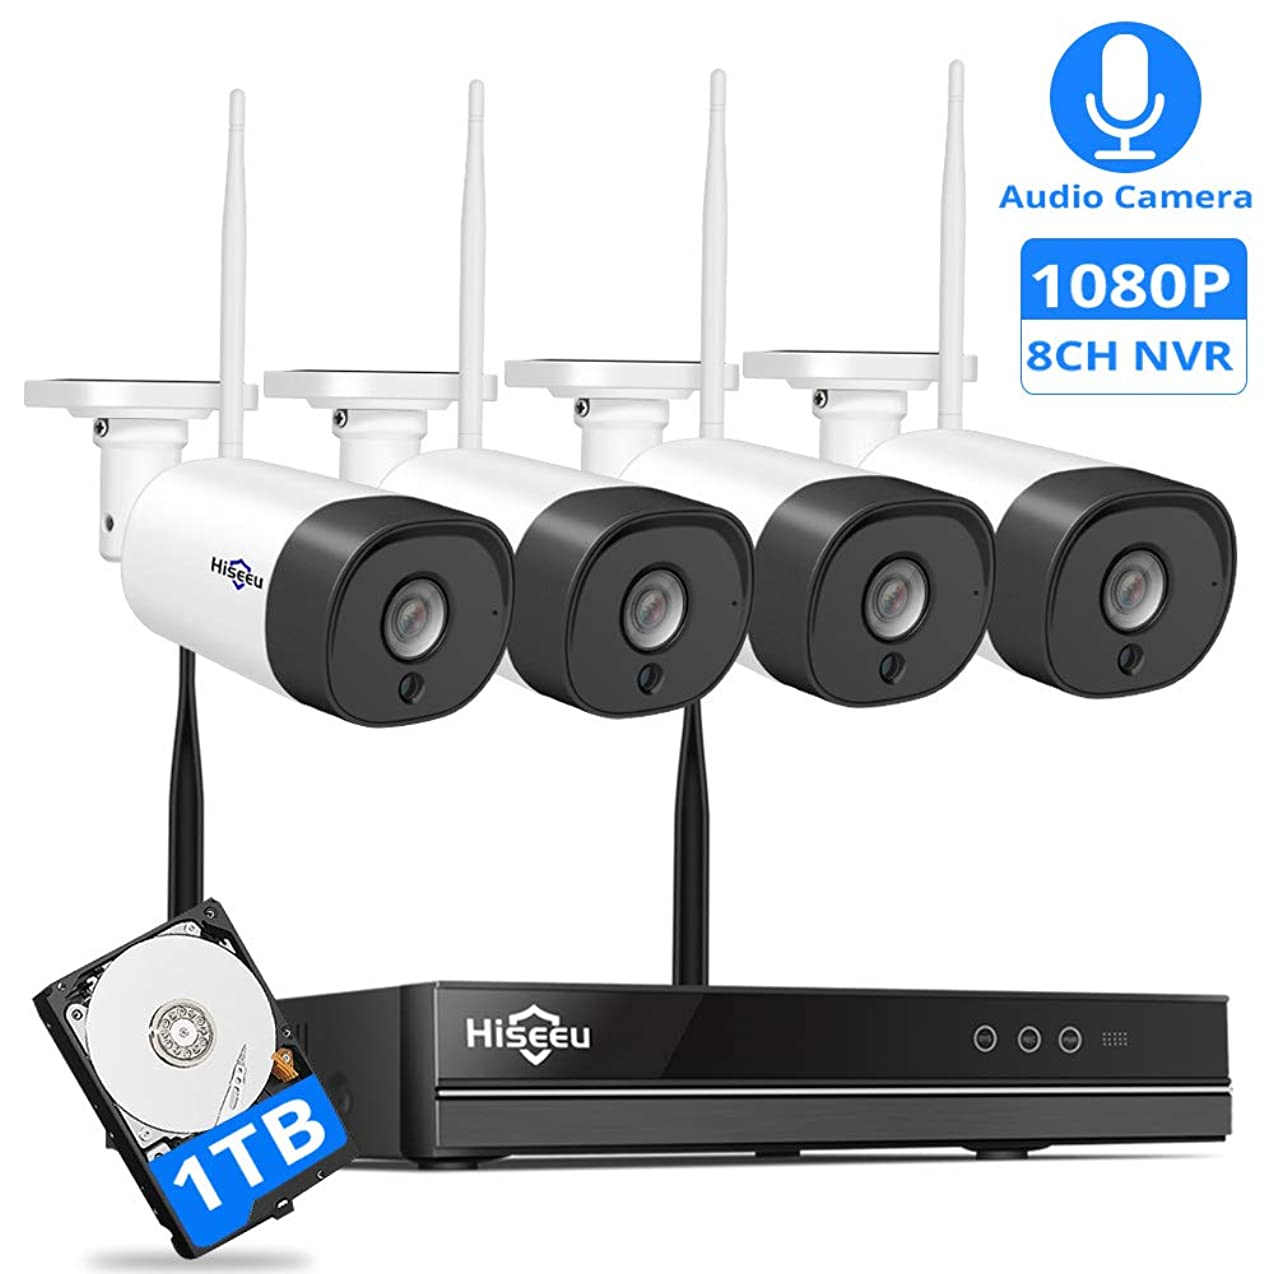 [Expandable 8CH] Wireless Security Camera System with Audio,Hiseeu 8CH 1080P NVR 4Pcs 1080P 2MP Night Vision IP Surveillance Cameras Home Outdoor Plug&Play,Easy Remote View,1TB HDD Preinstalled dnyfqyfbtzfu0472